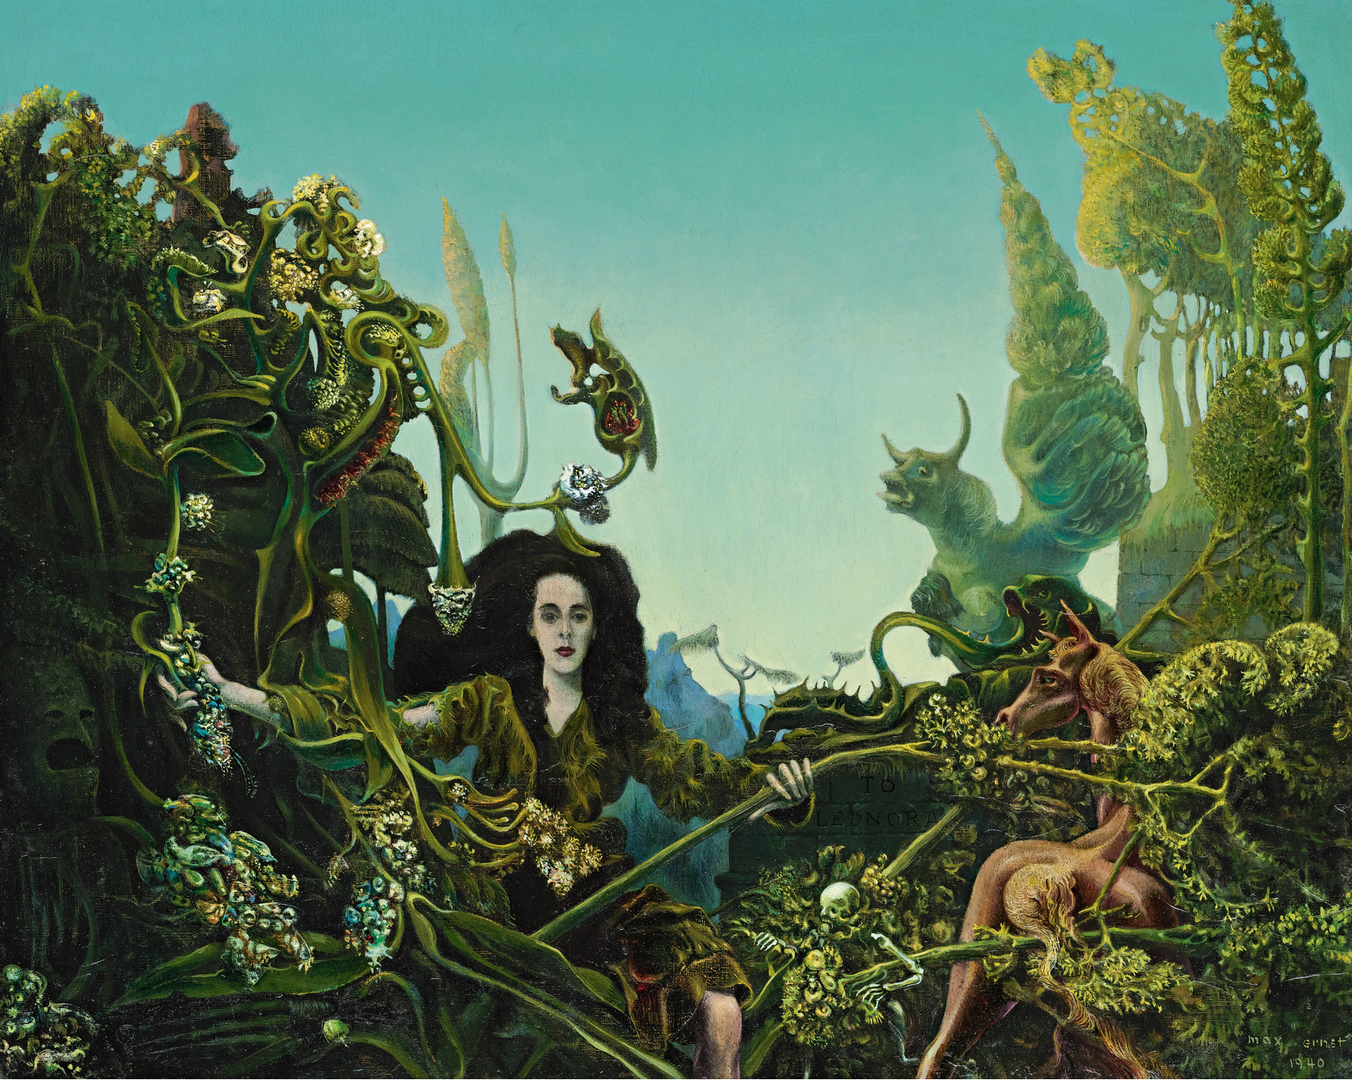 Leonora In the Morning Light by Max Ernst